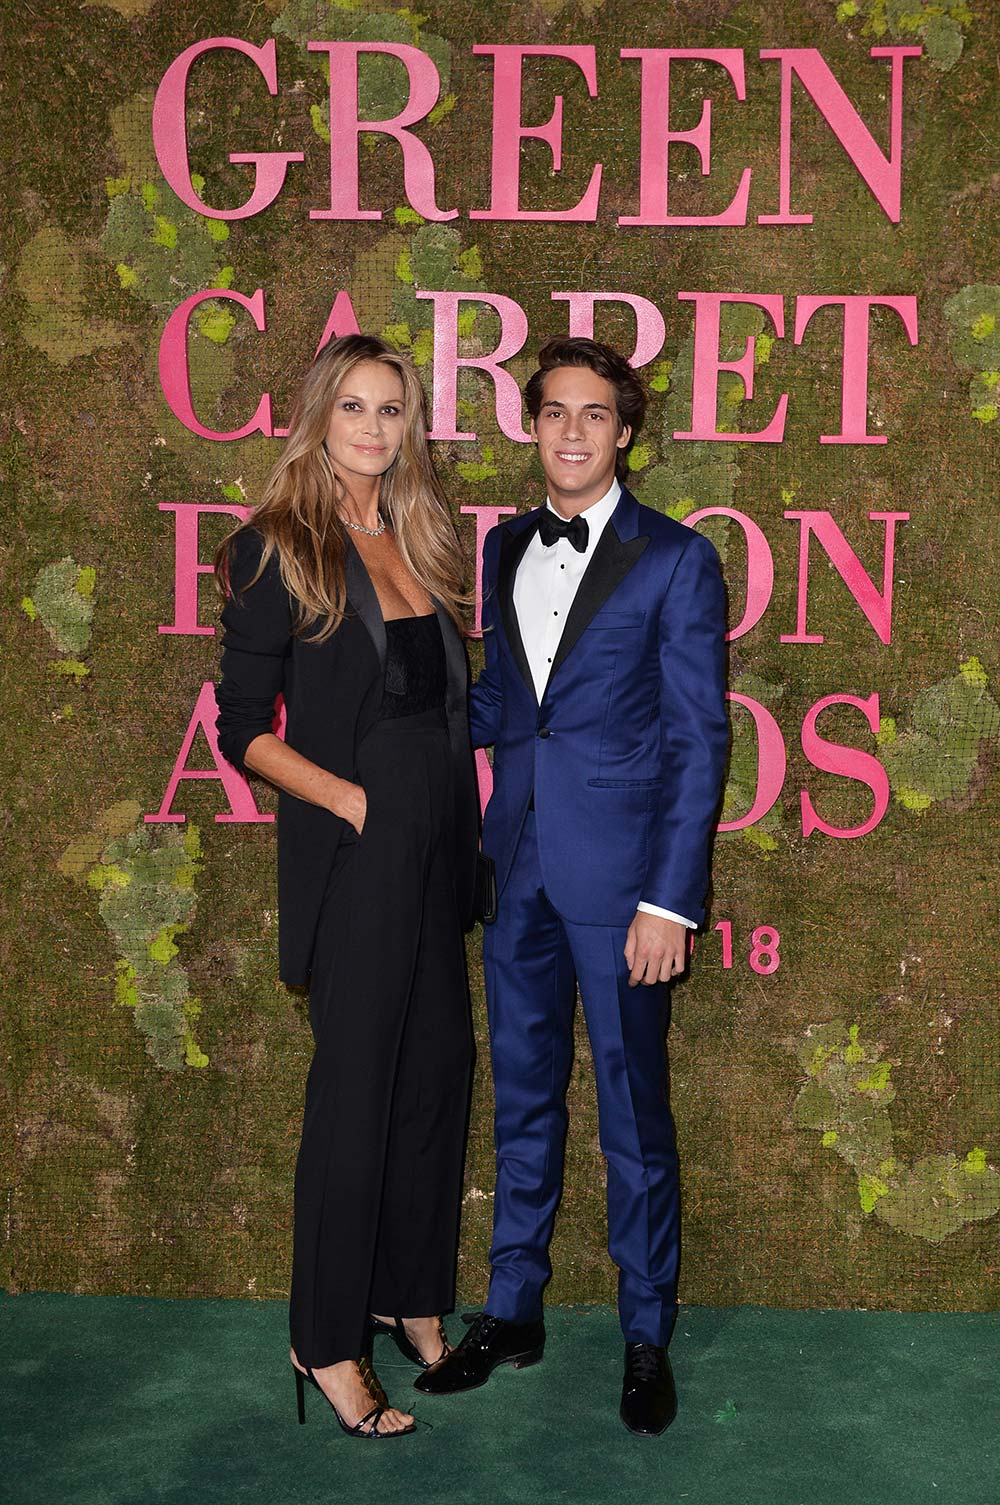 Green Carpet Fashion Awards 2018 - Elle McPherson - Hair & Makeup Massimo Serini